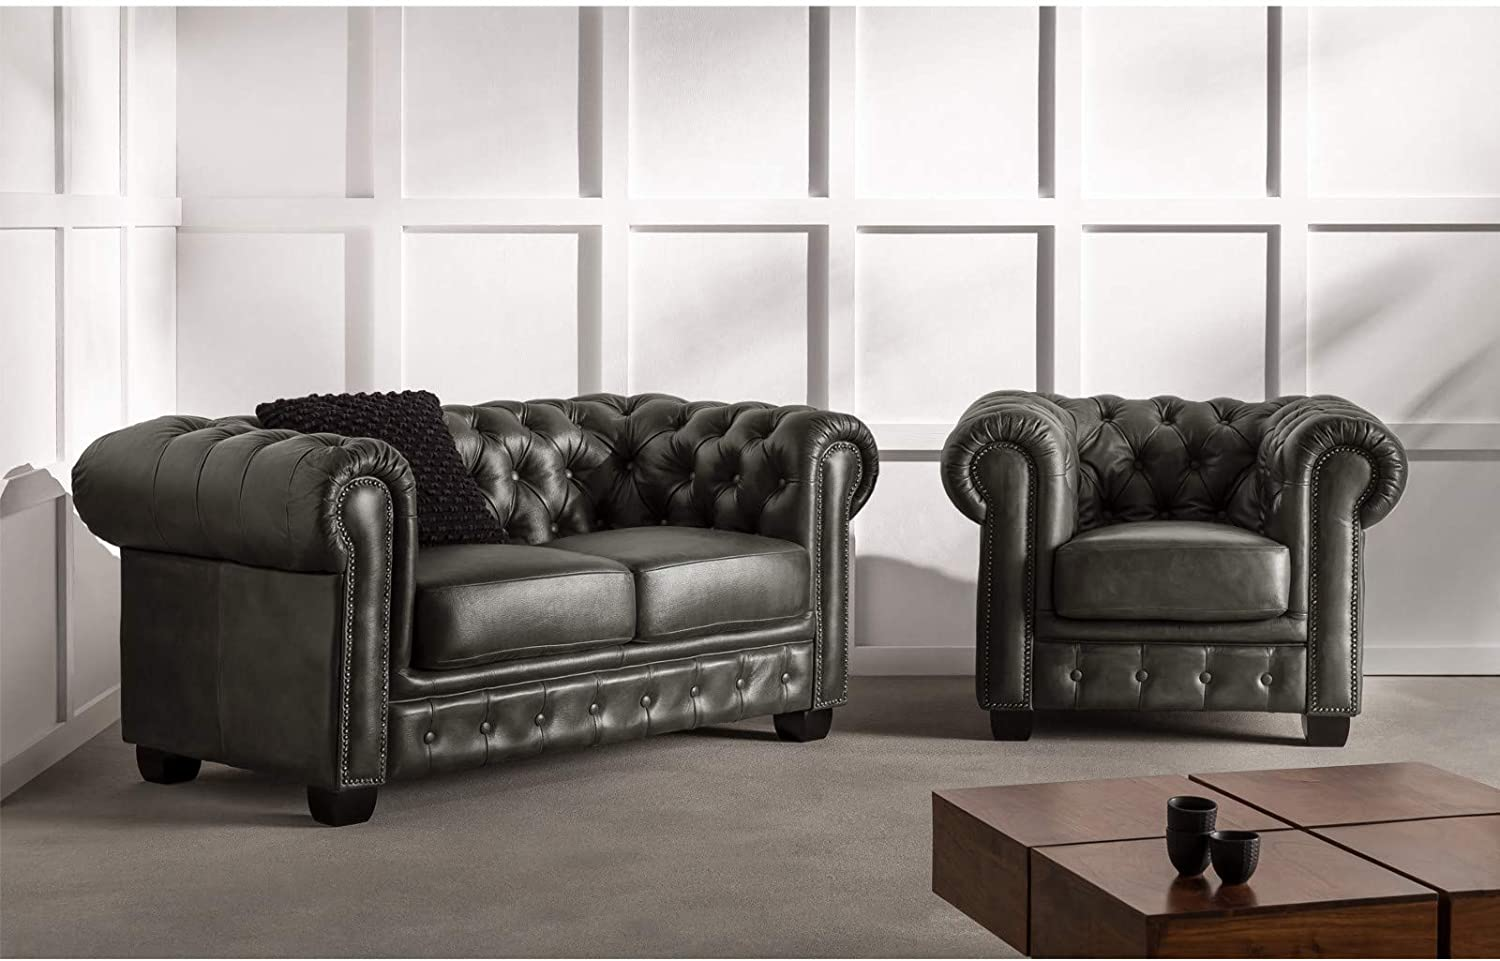 Woodkings® Chesterfield Sofa Set Grey 10+10+10 Vintage Real Leather ...